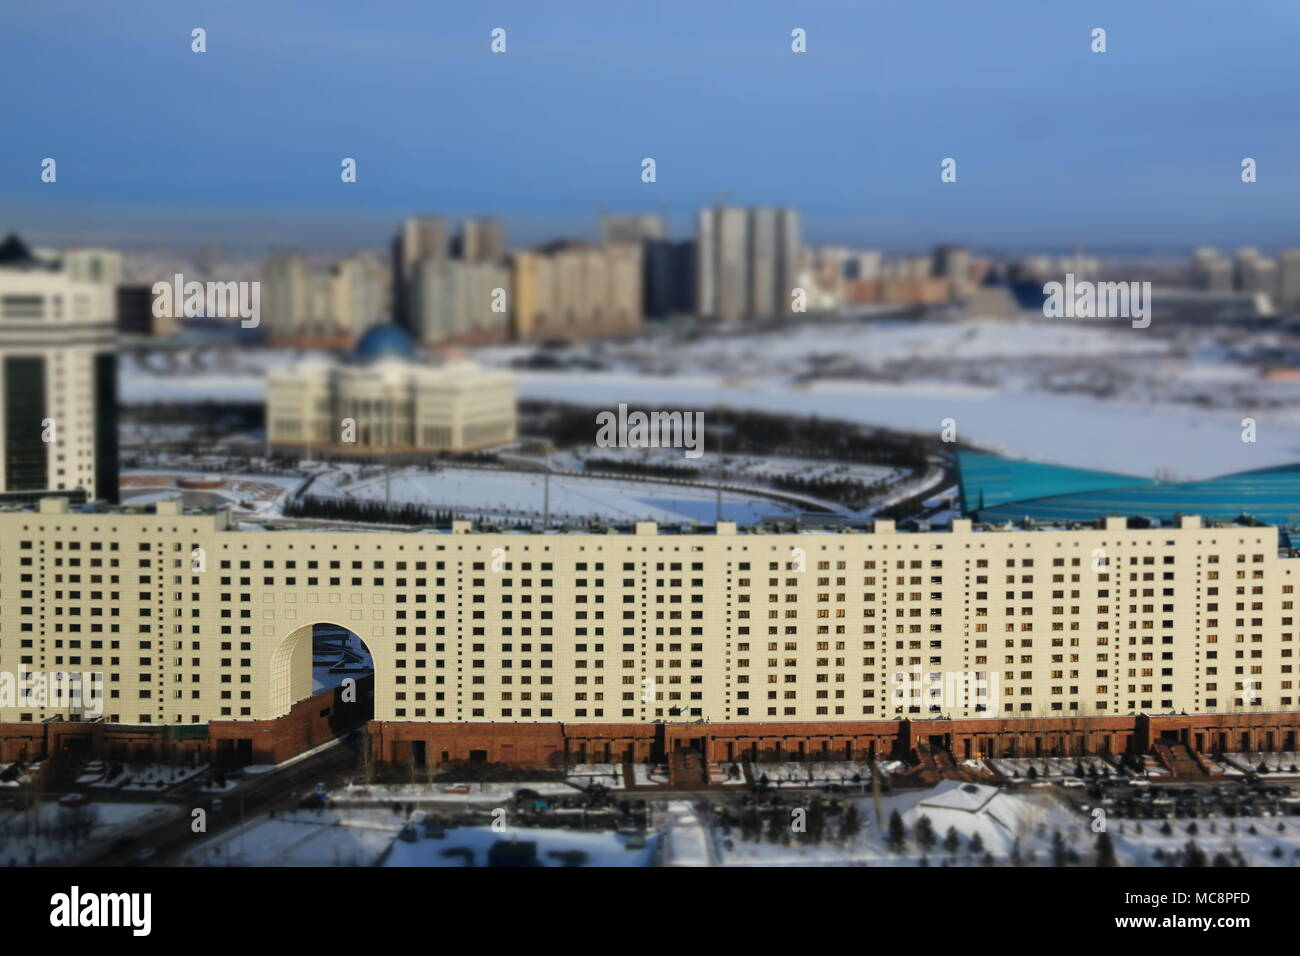 Soviet Style Building in Nur-Sultan, Kazakhstan, at -24 degrees Celsius - Presidential Palace in the background - Stock Image